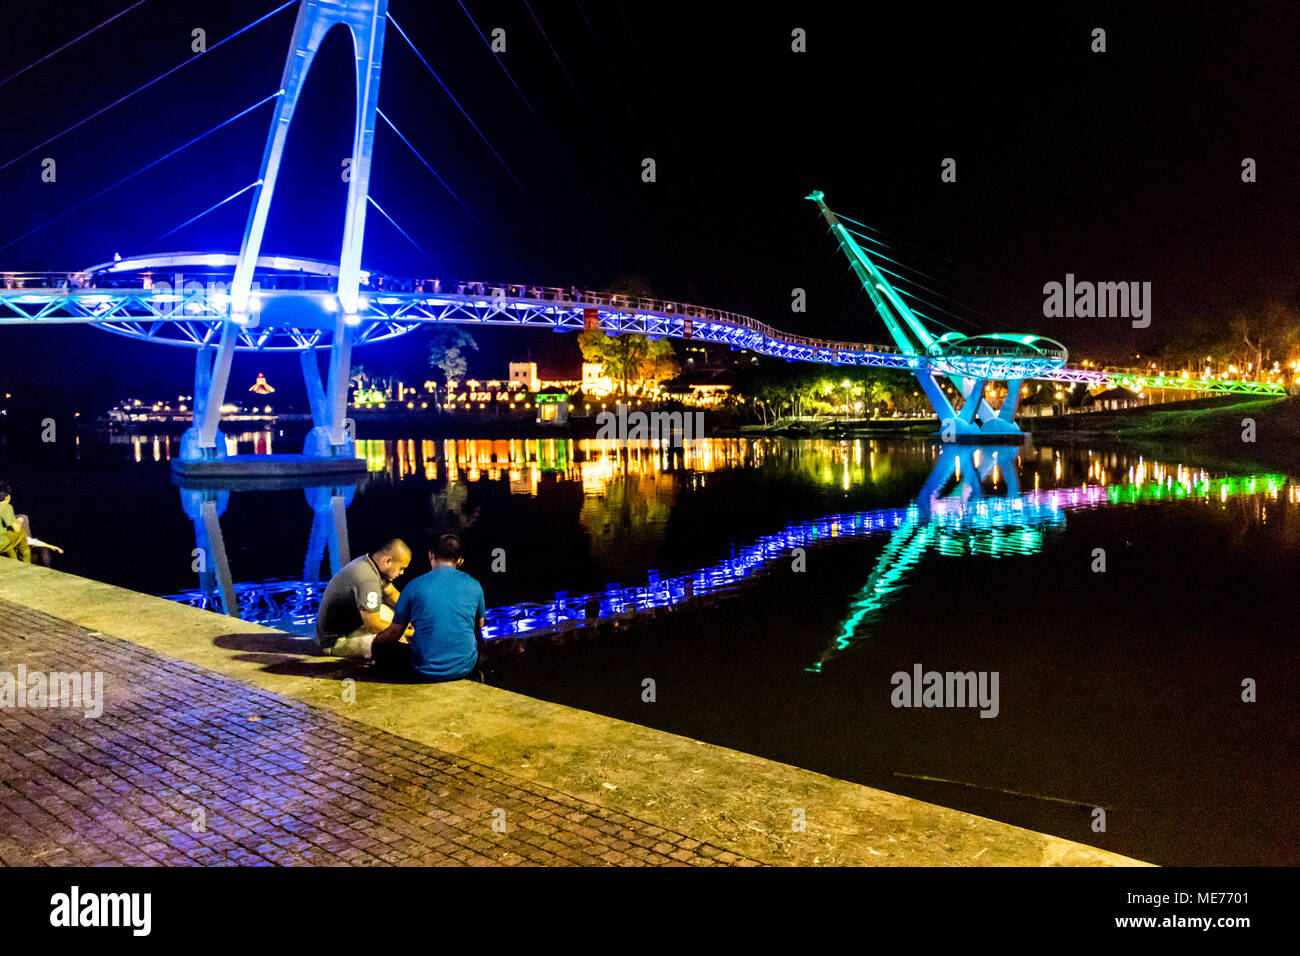 Darul Hana bridge or Golden Bridge over the Sarawak river at nighttime in the city of Kuching Sarawak Malaysia Island of Borneo - Stock Image